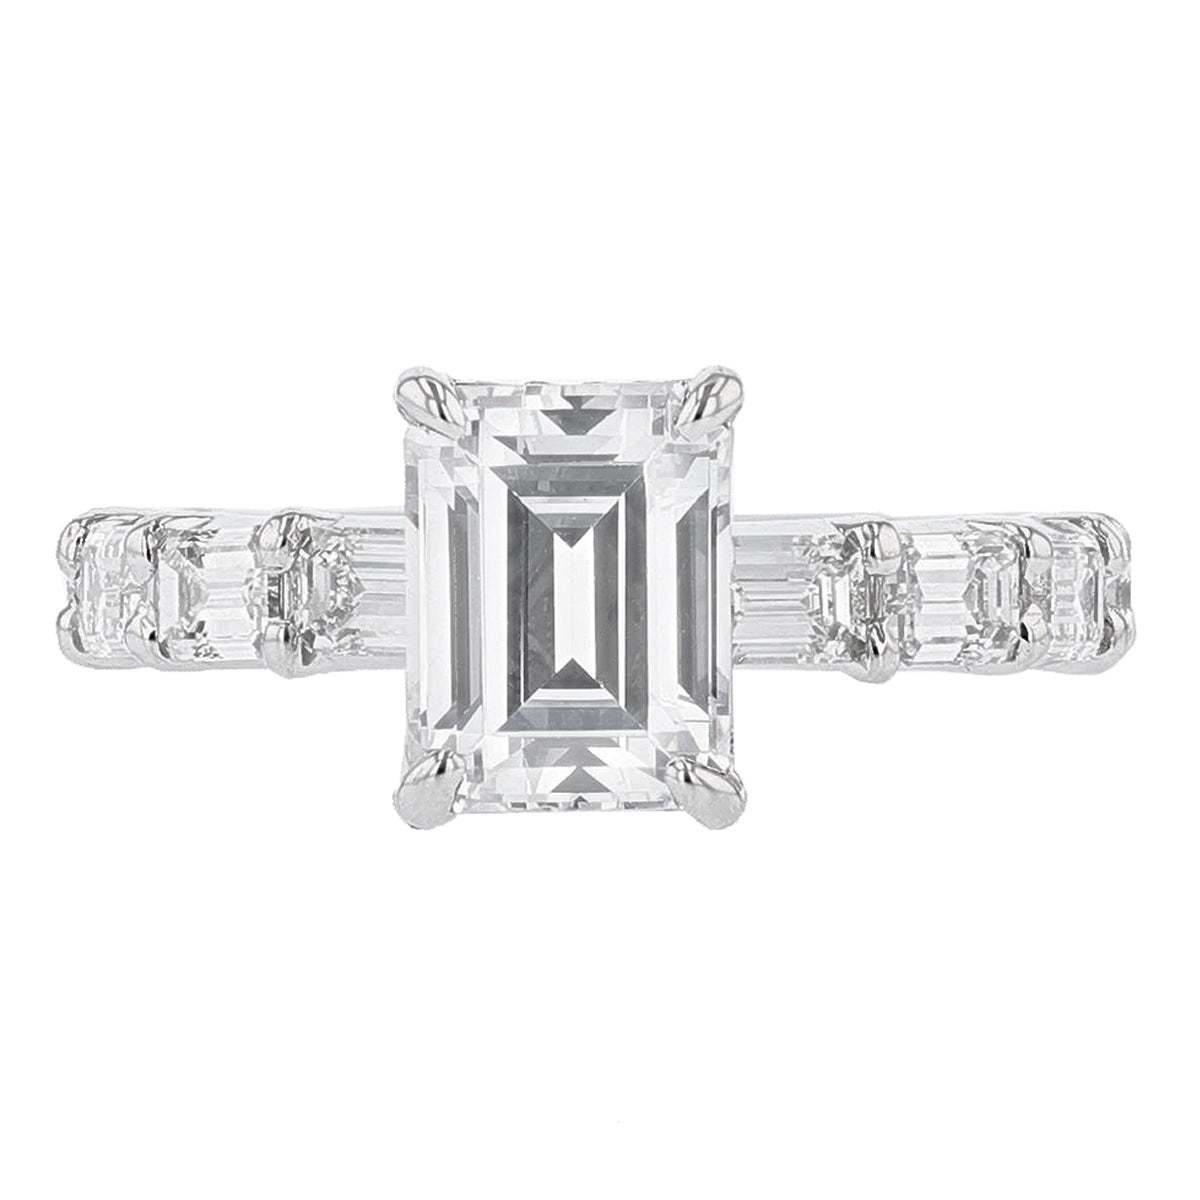 14K White Gold Emerald Cut Diamond Engagement Ring - Nazarelle